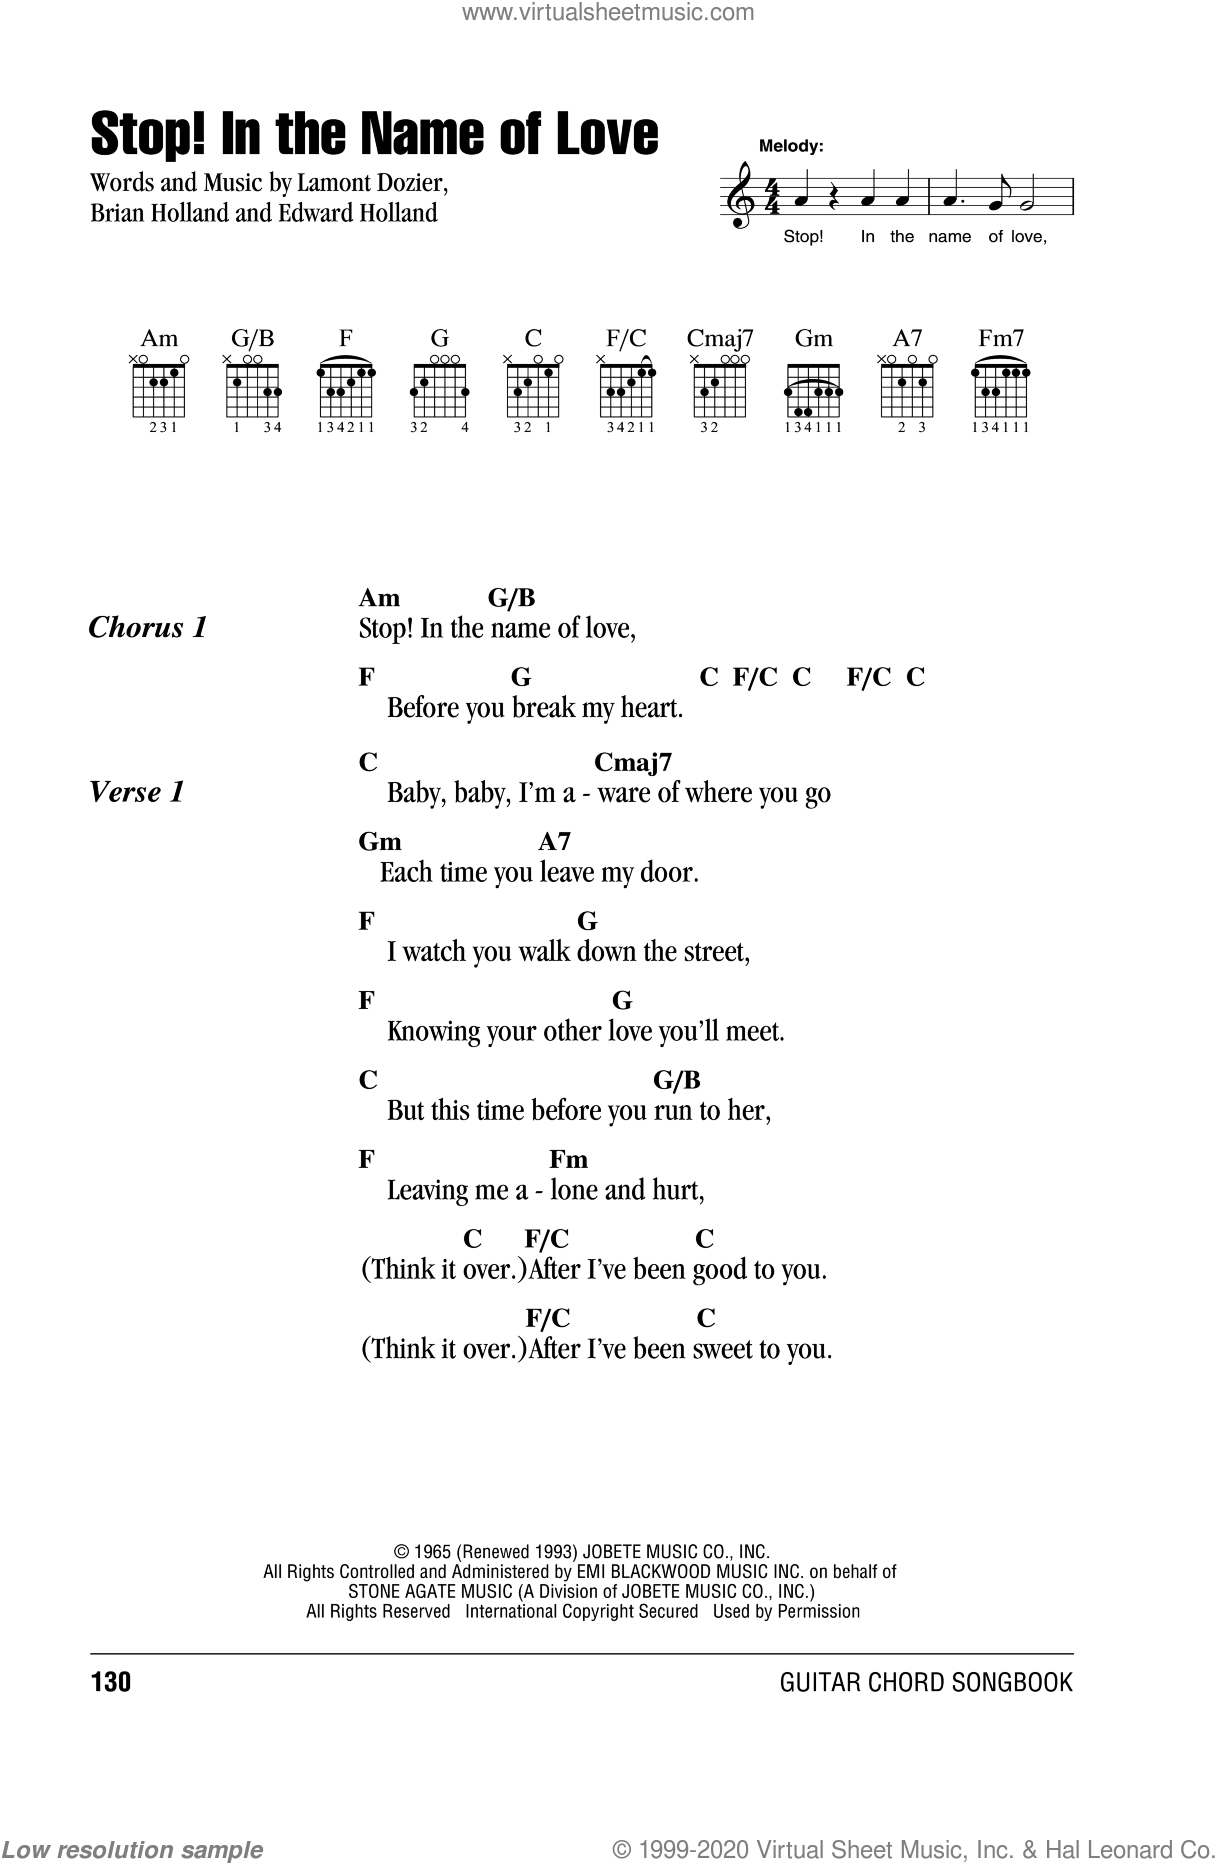 Stop! In The Name Of Love sheet music for guitar (chords) by The Supremes, Diana Ross and Brian Holland, intermediate. Score Image Preview.